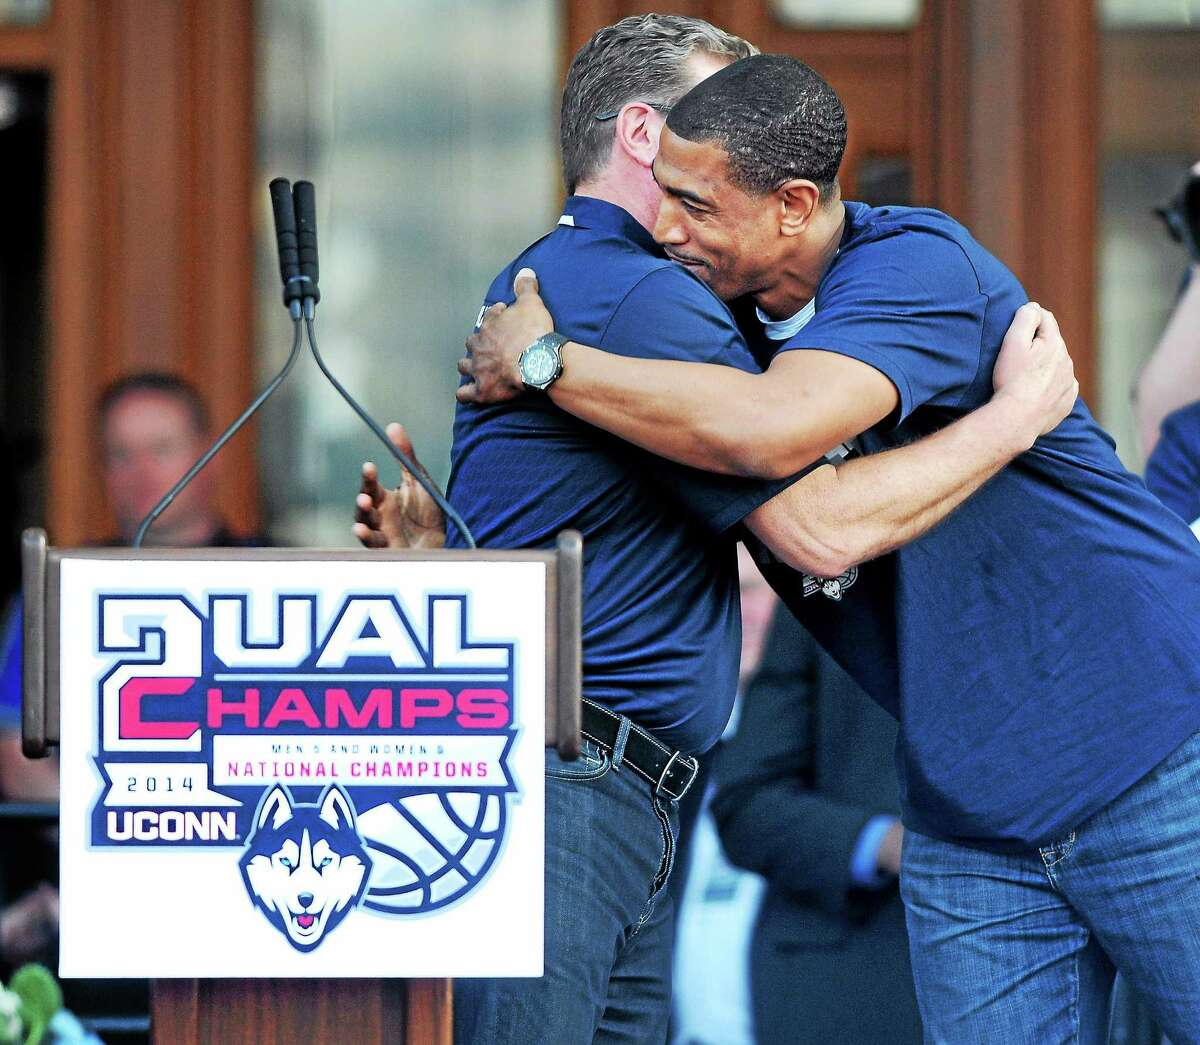 In this April 13, 2014 file photo, UConn women's basketball coach Geno Auriemma, left, hugs UConn men's basketball coach Kevin Ollie at a victory rally in front of the Capitol Building in Hartford.